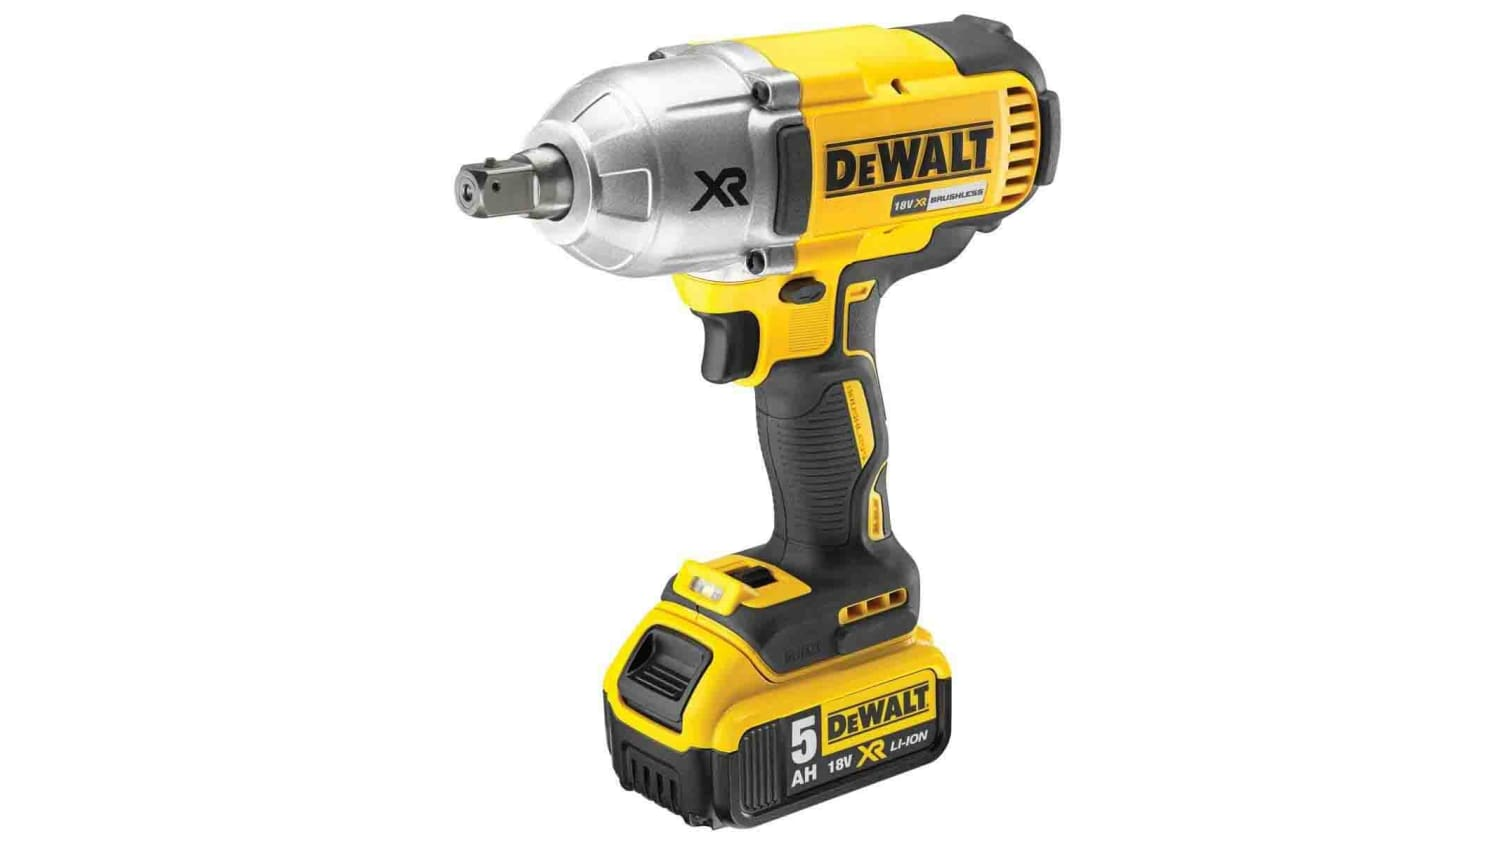 DCF899P2-GB   DeWALT 950Nm 1/2 in 18V Cordless Impact Wrench, UK Plug   RS Components